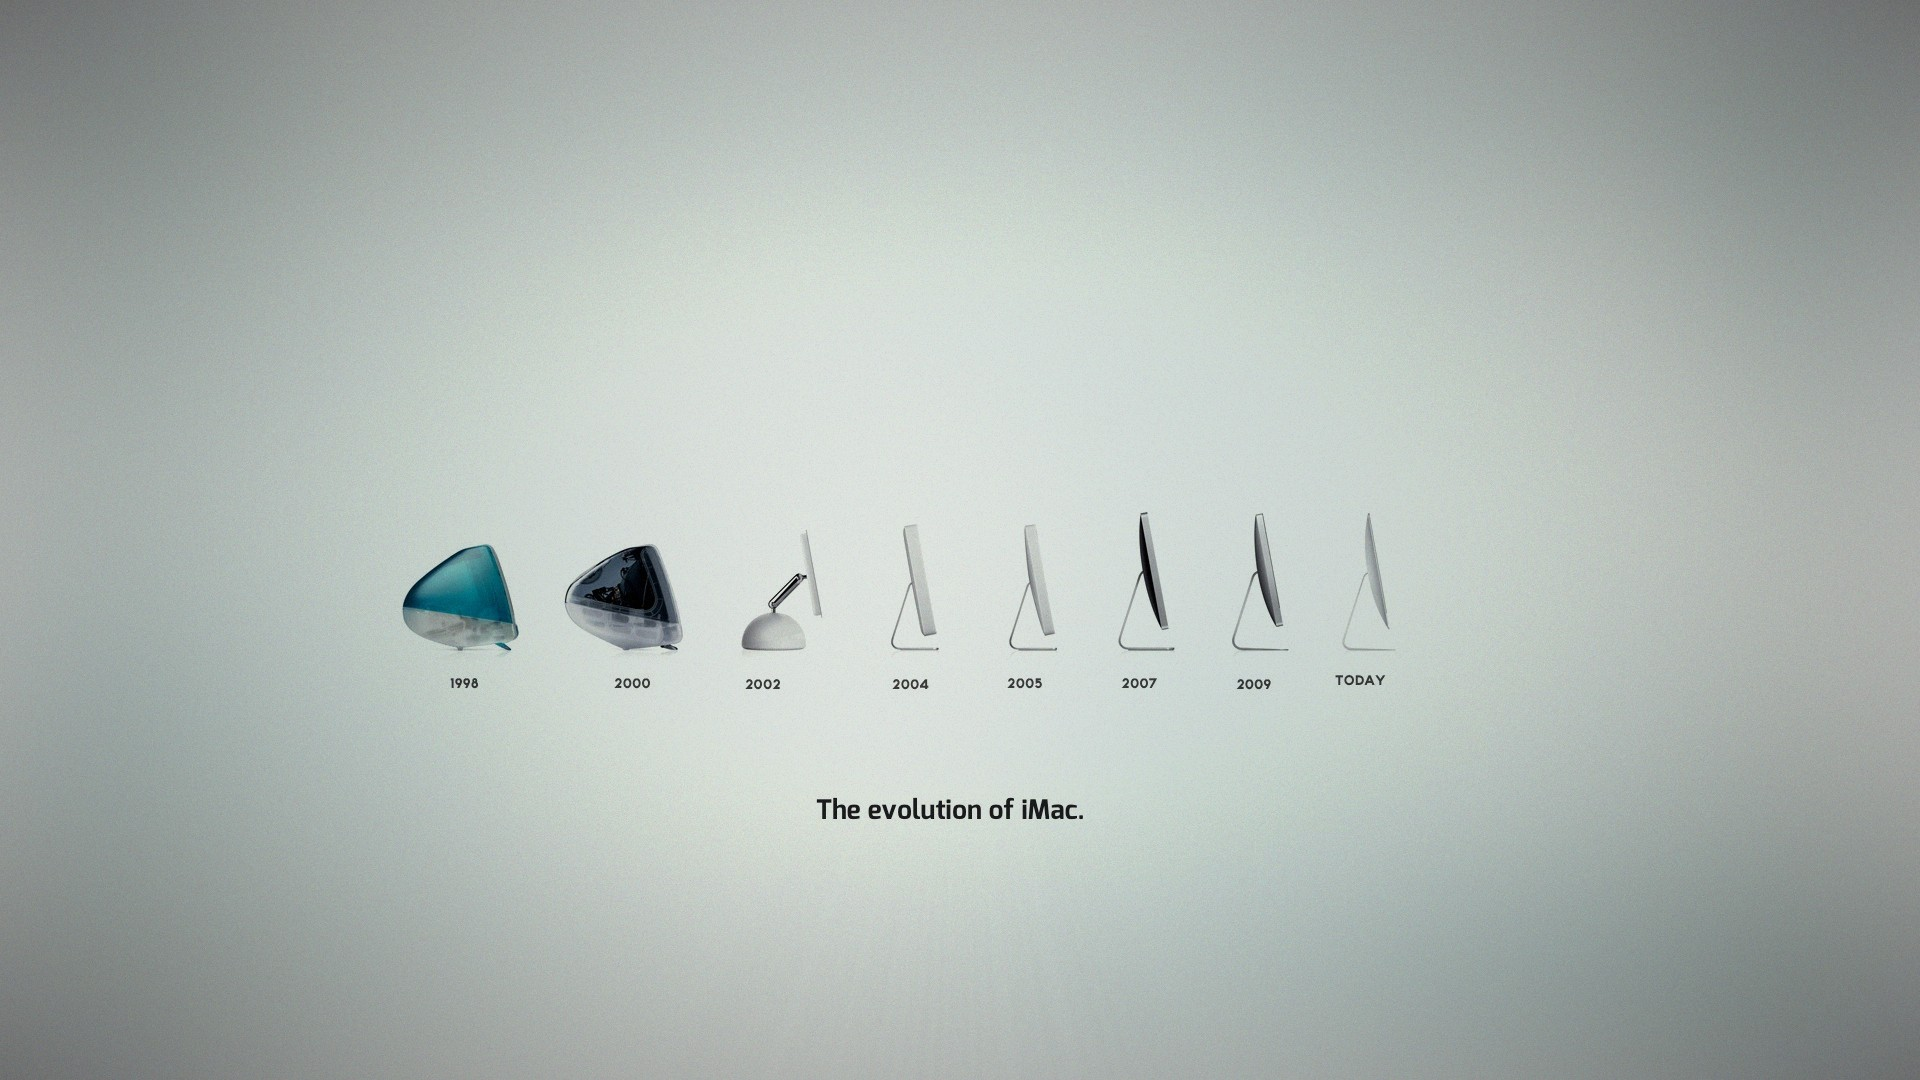 apple imac evolution wallpapers 35269 1920x1080